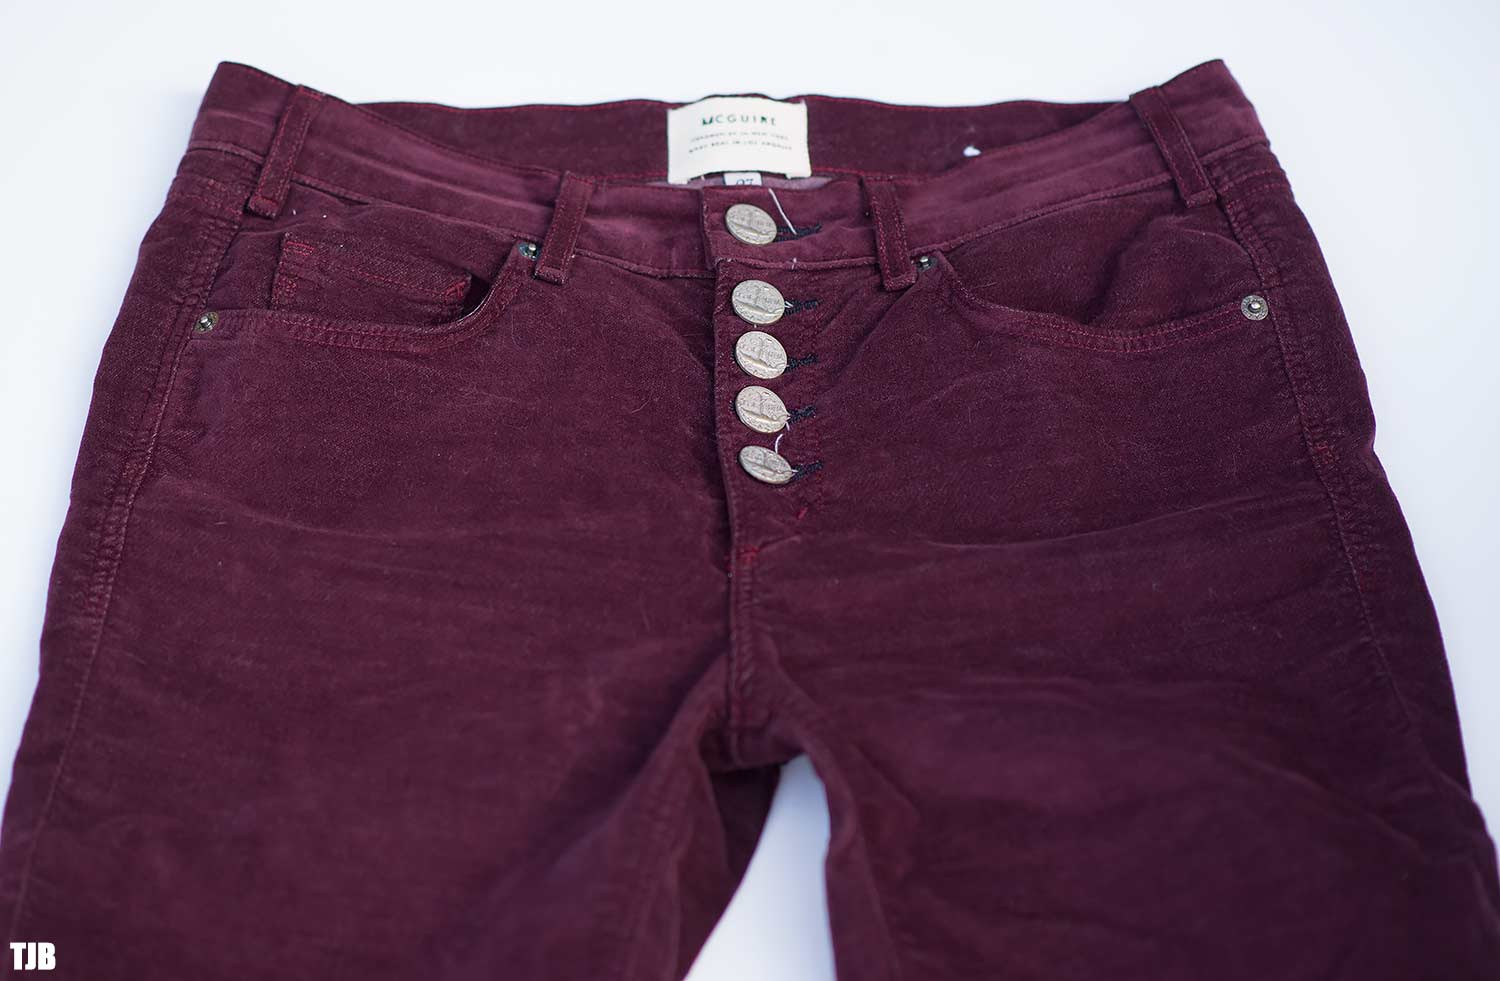 mcguire-denim-newton-exposed-button-skinny-pants-in-pinot-review